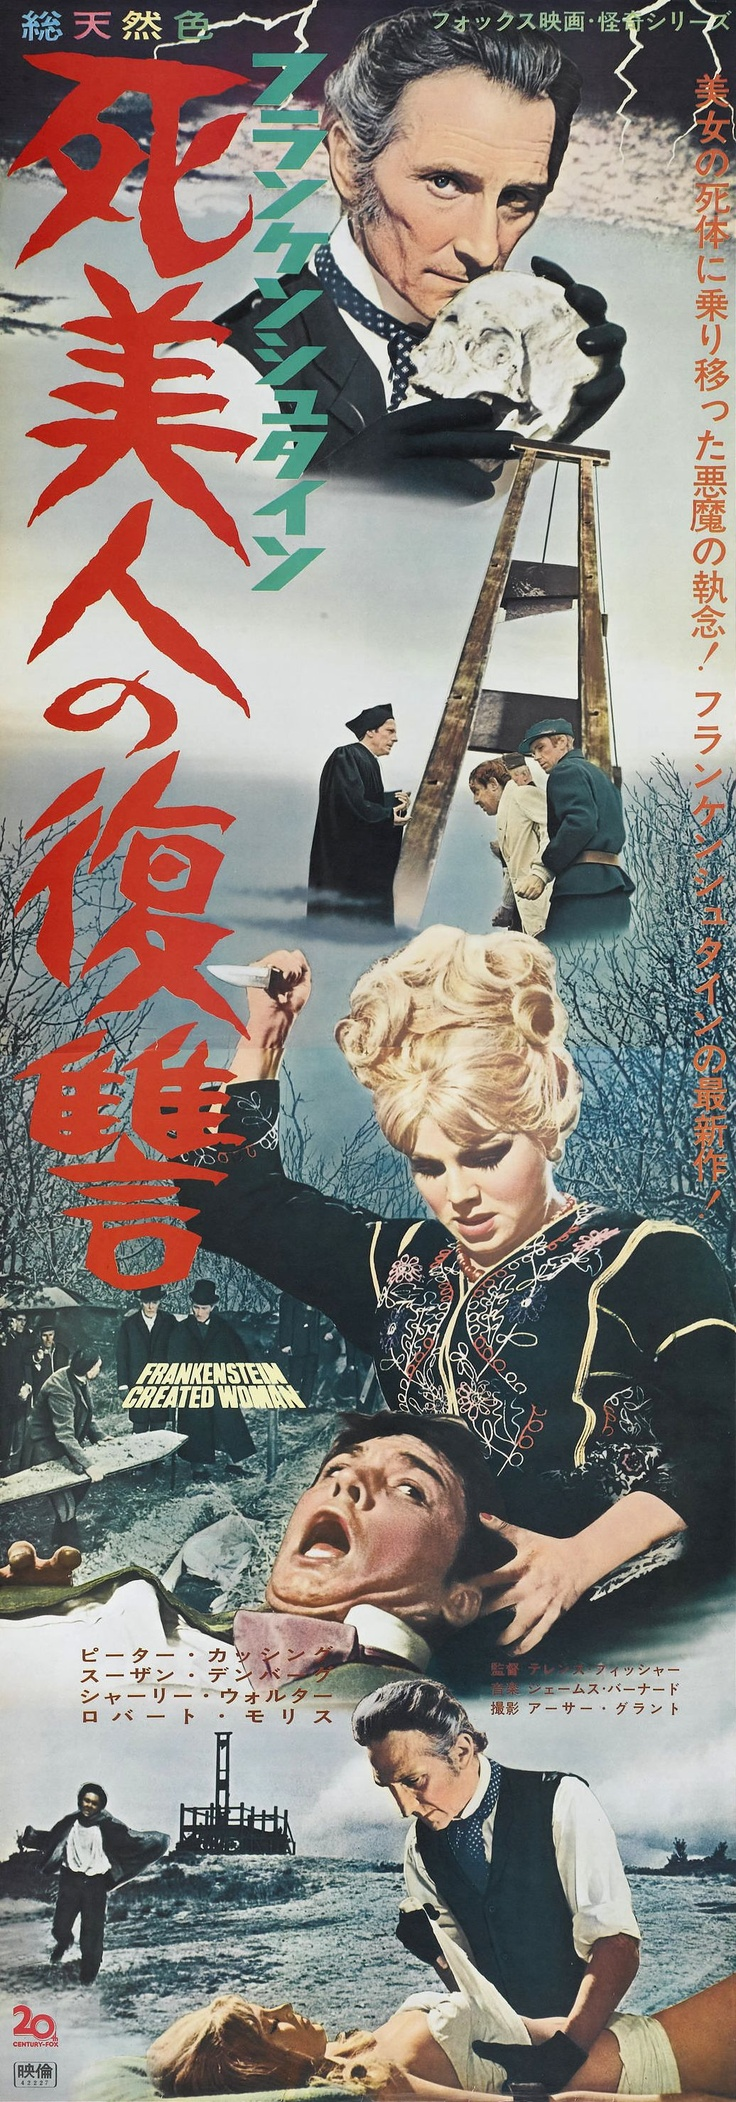 Frankenstein created Woman - Japanese release poster.